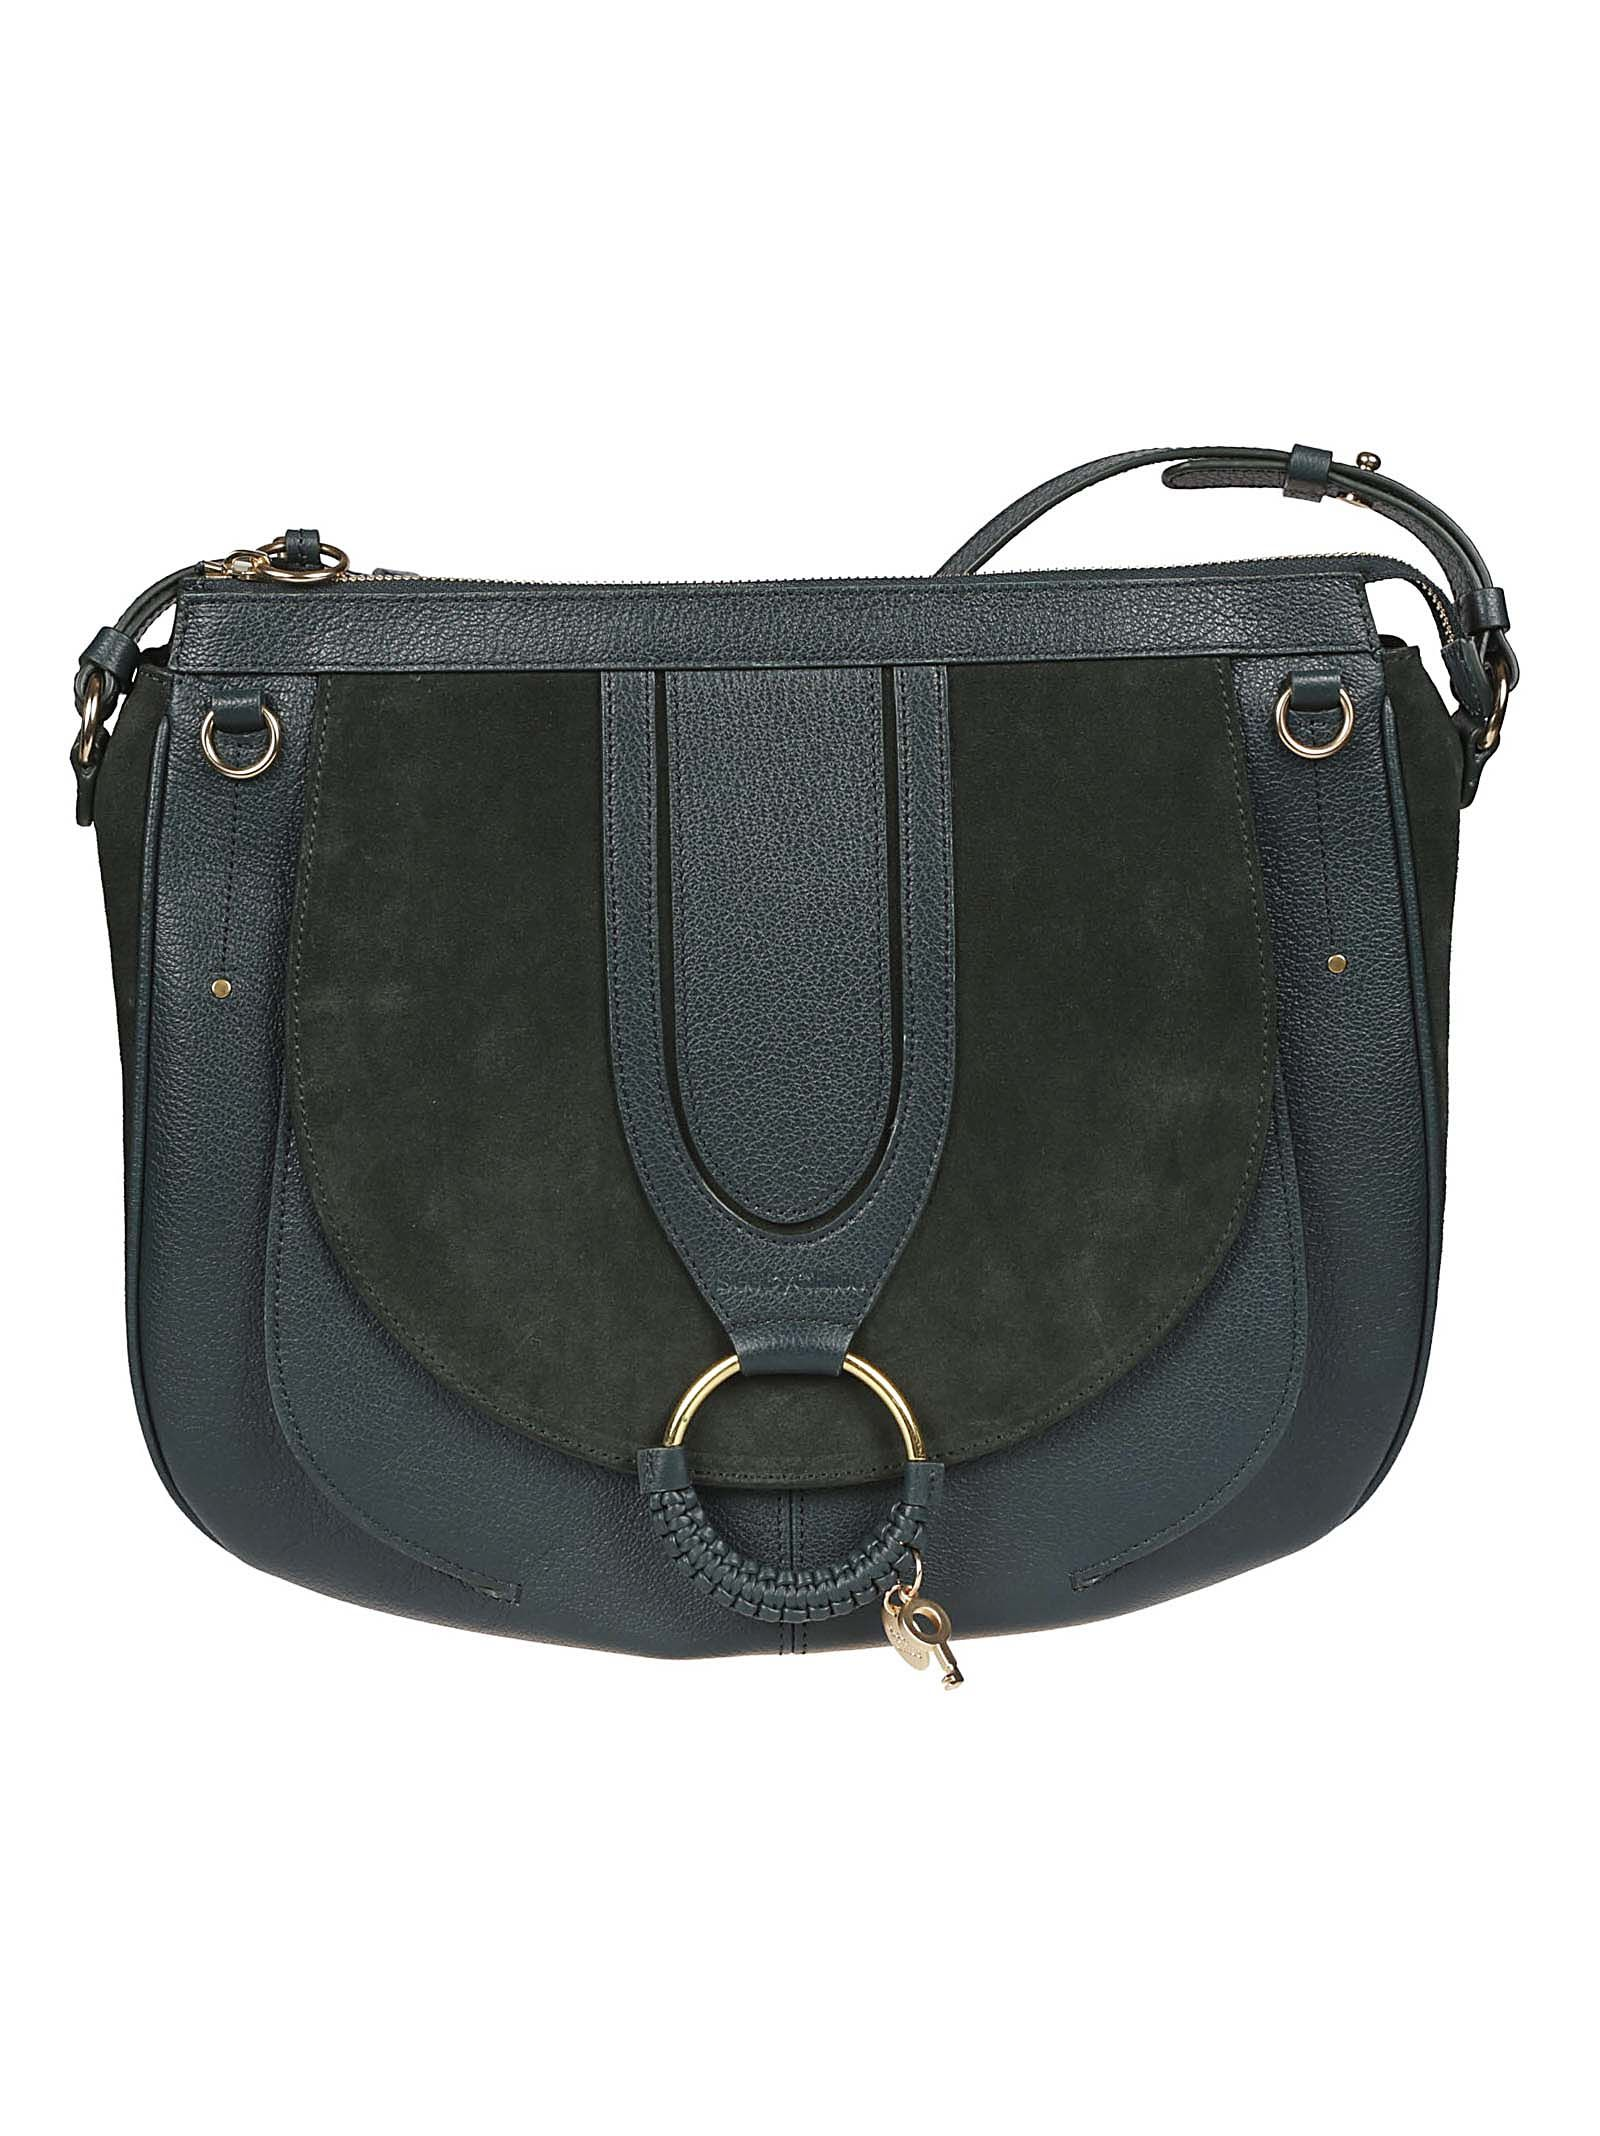 c72dc37fed4e See By ChloÉ See By Chloe Hana Shoulder Bag